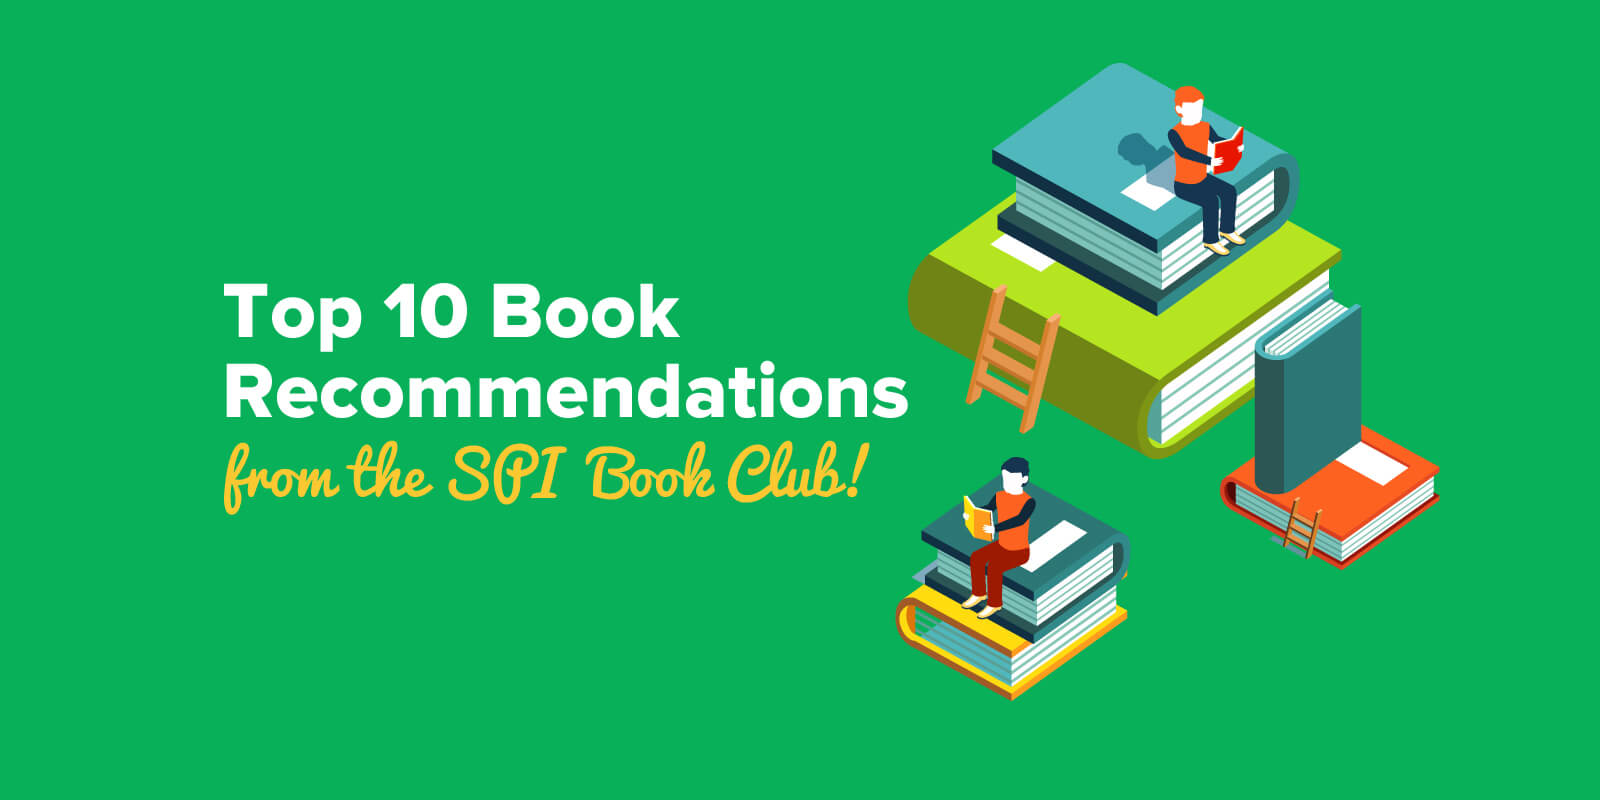 Top 10 Book Recommendations from the SPI Book Club!